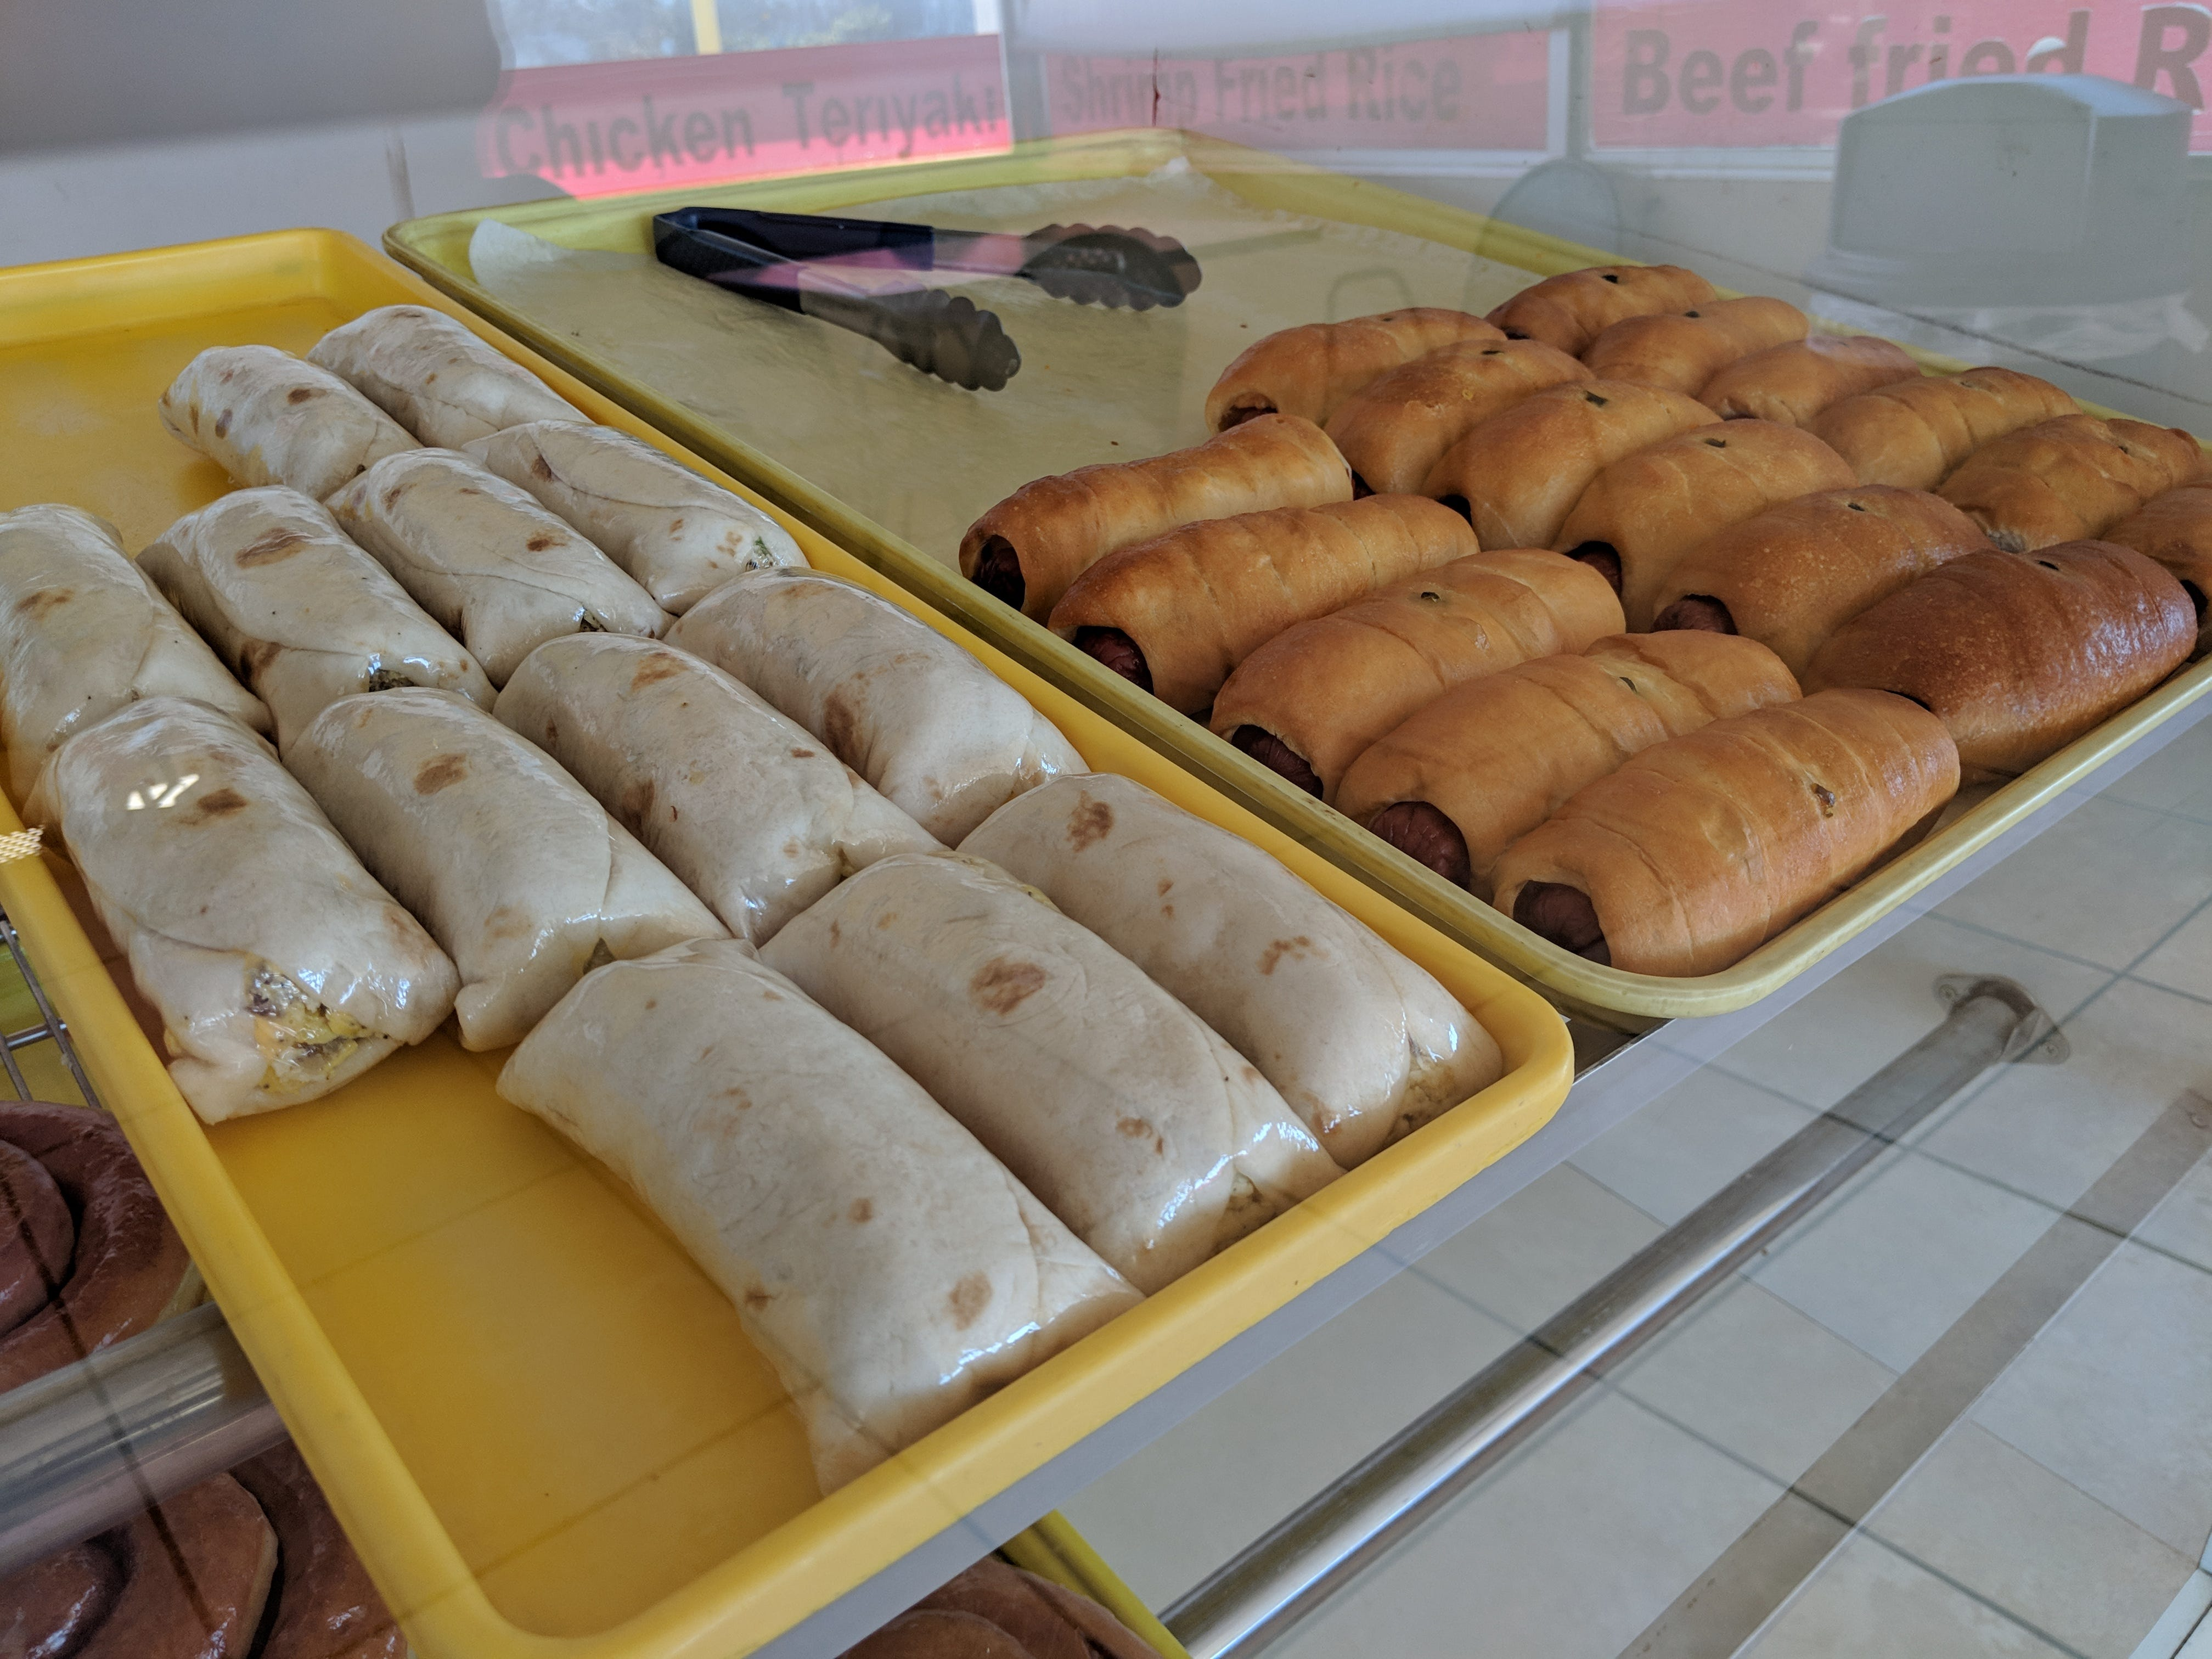 Burritos and wrapped hotdogs at Tommy's Donut.